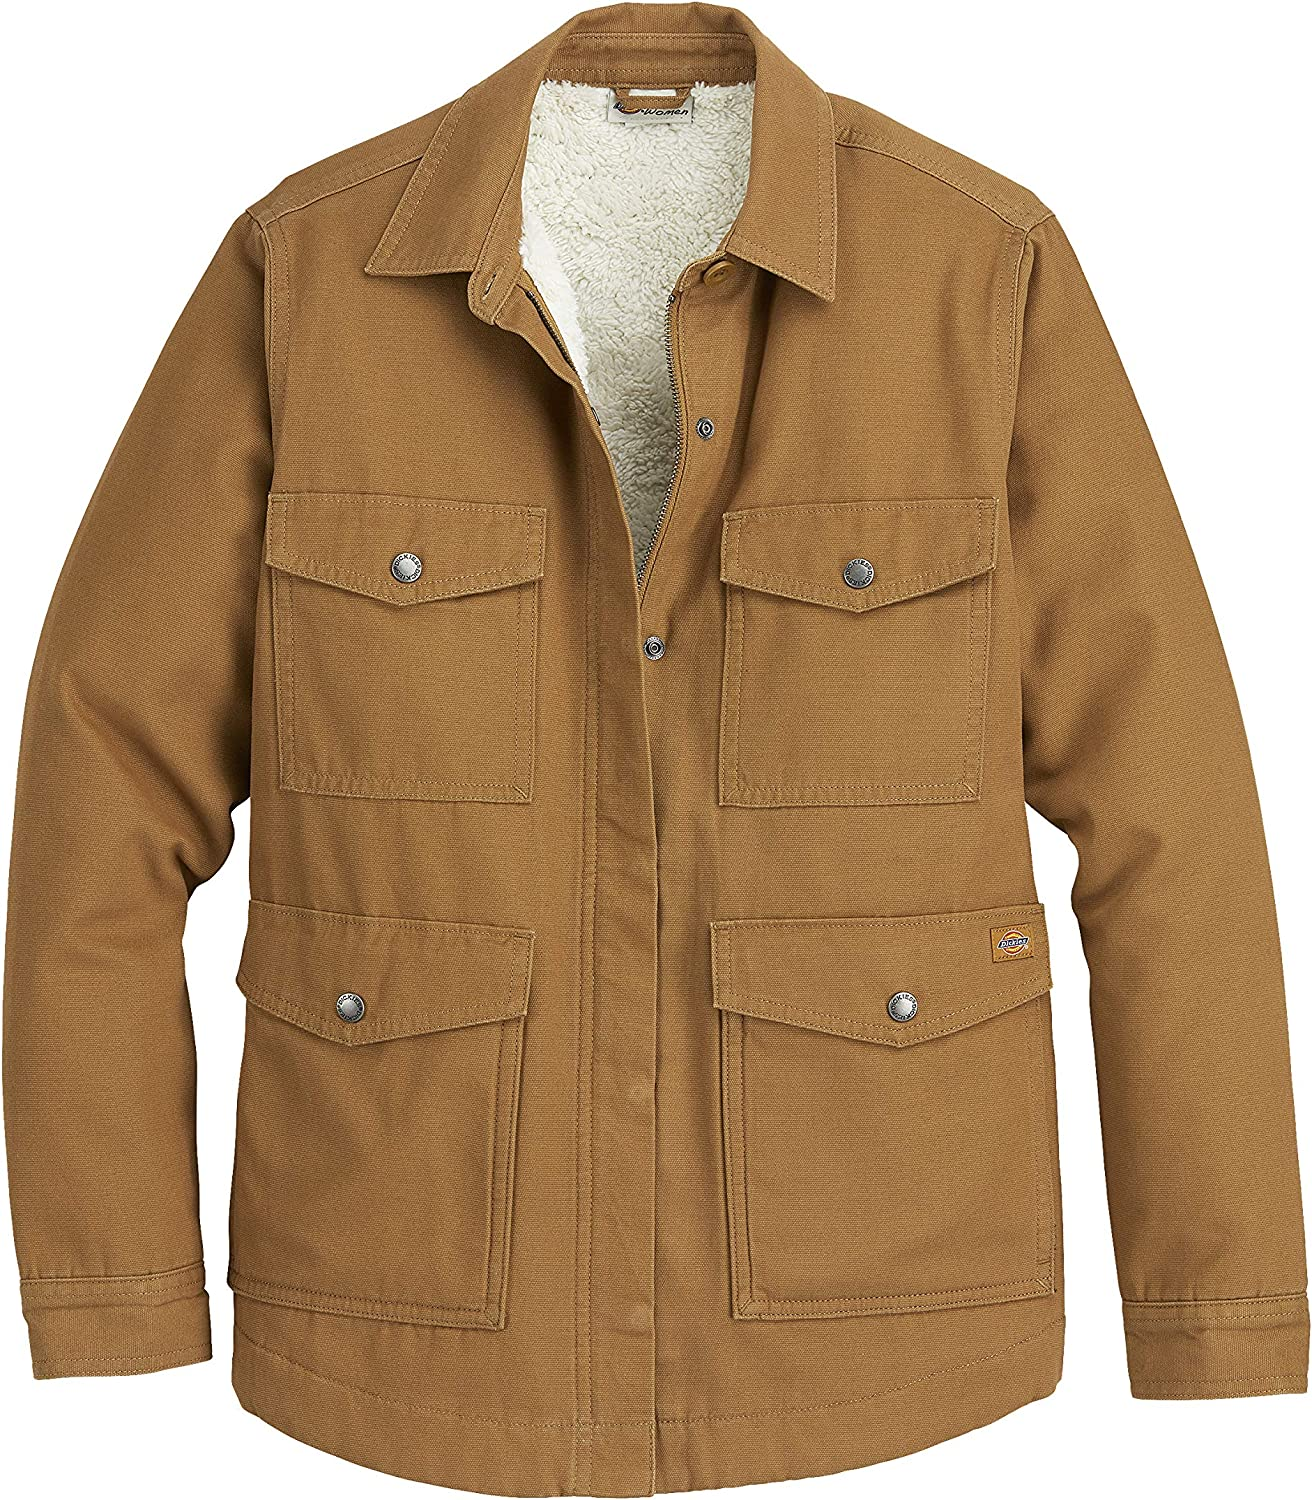 Dickies Women's Duck Sherpa Lined Chore Coat: Clothing